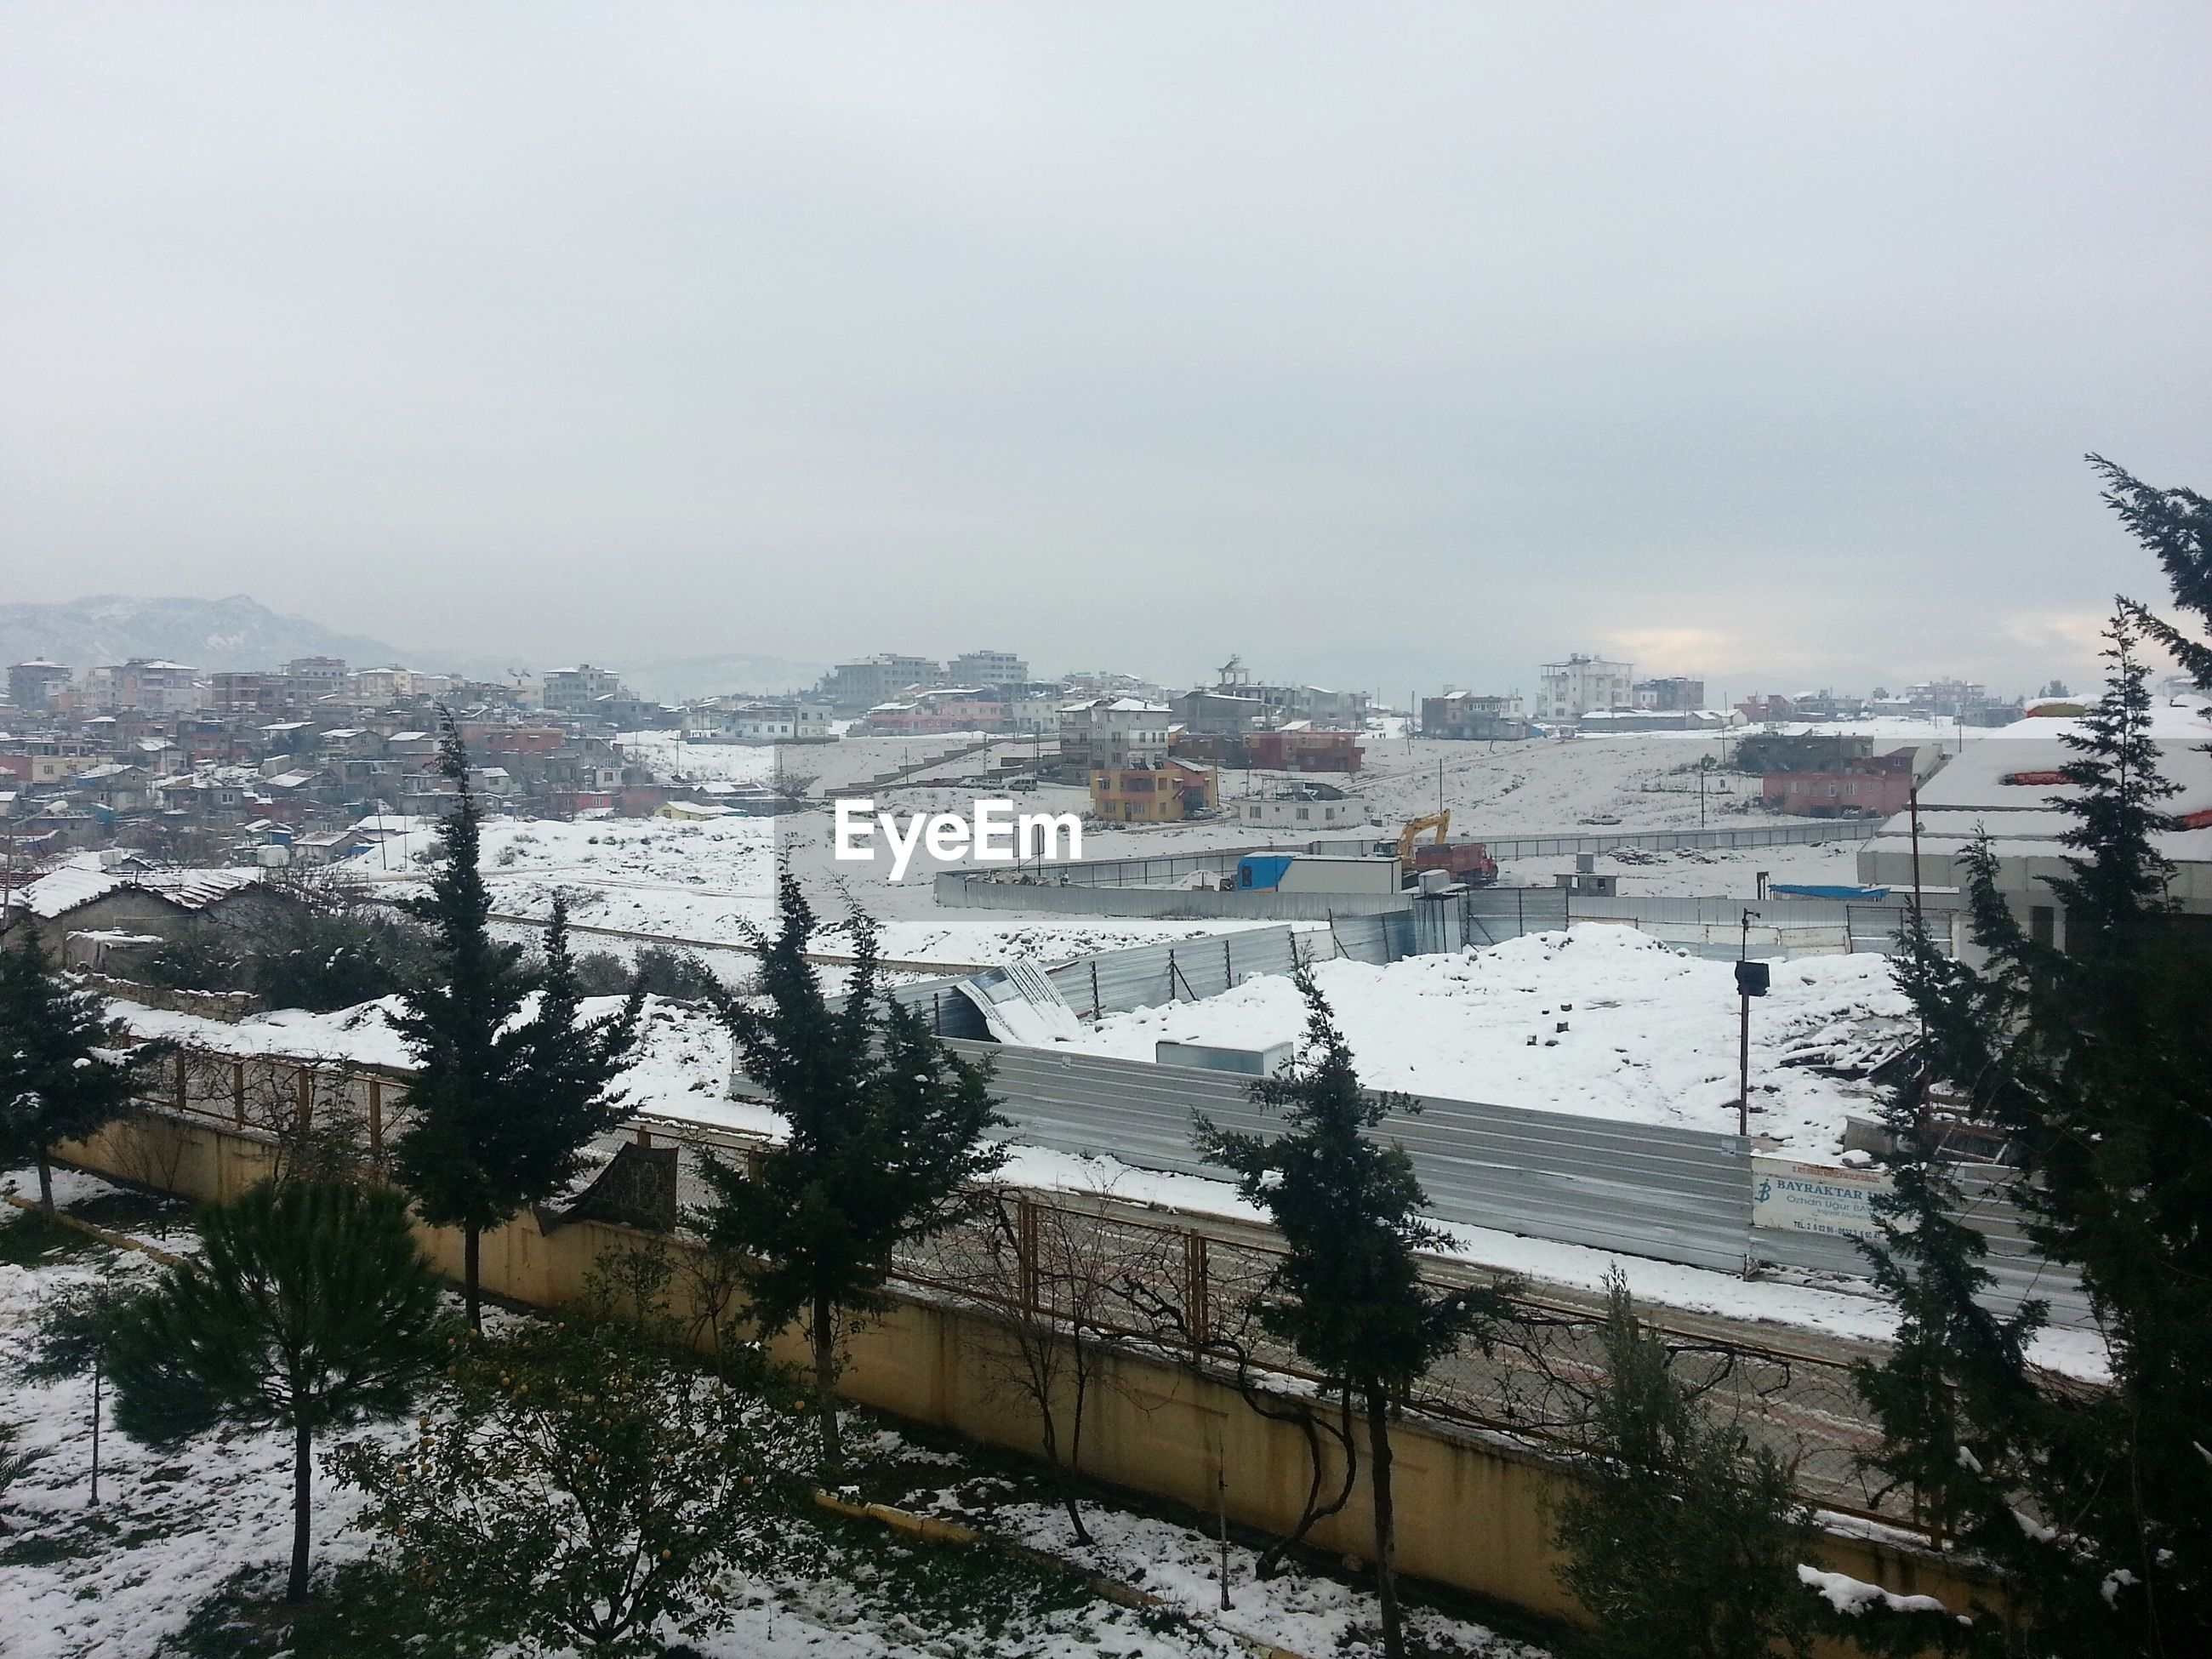 High angle view of snow covered town